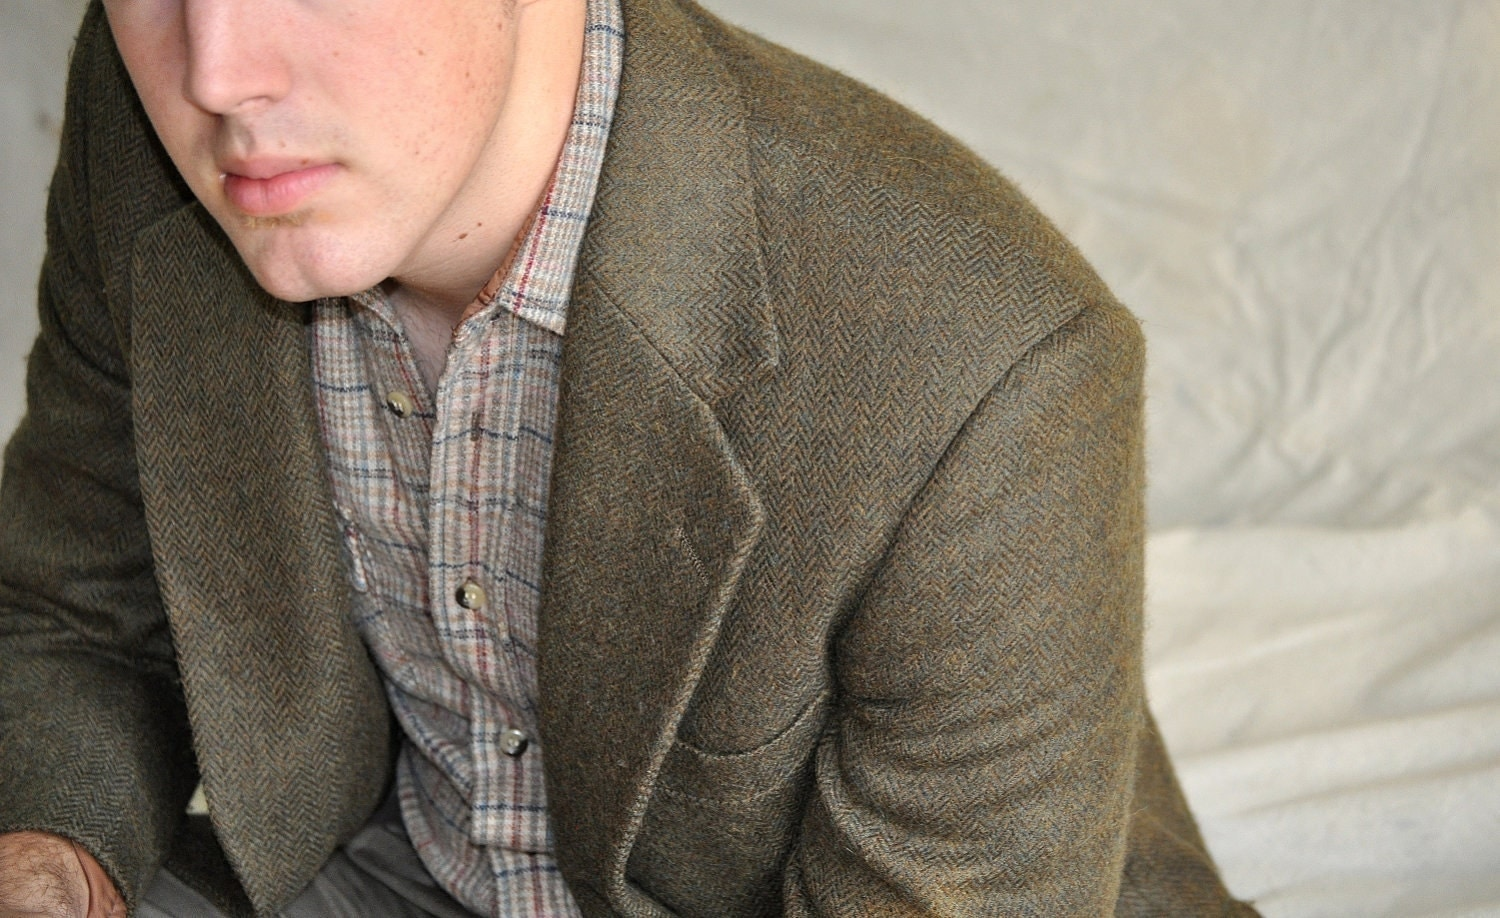 Men's Tweed Jackets, custom tailormade, largest collection guaranteed. NEW! Italian Woven Fabric Suits and Jackets. x Vintage Milan Green Tweed Jacket. Pre-Order. $ SHOW CLOSEUP. Vintage Milan Blue Tweed Jacket. $ SHOW CLOSEUP. Light Weight Slubby Black Tweed Jacket.